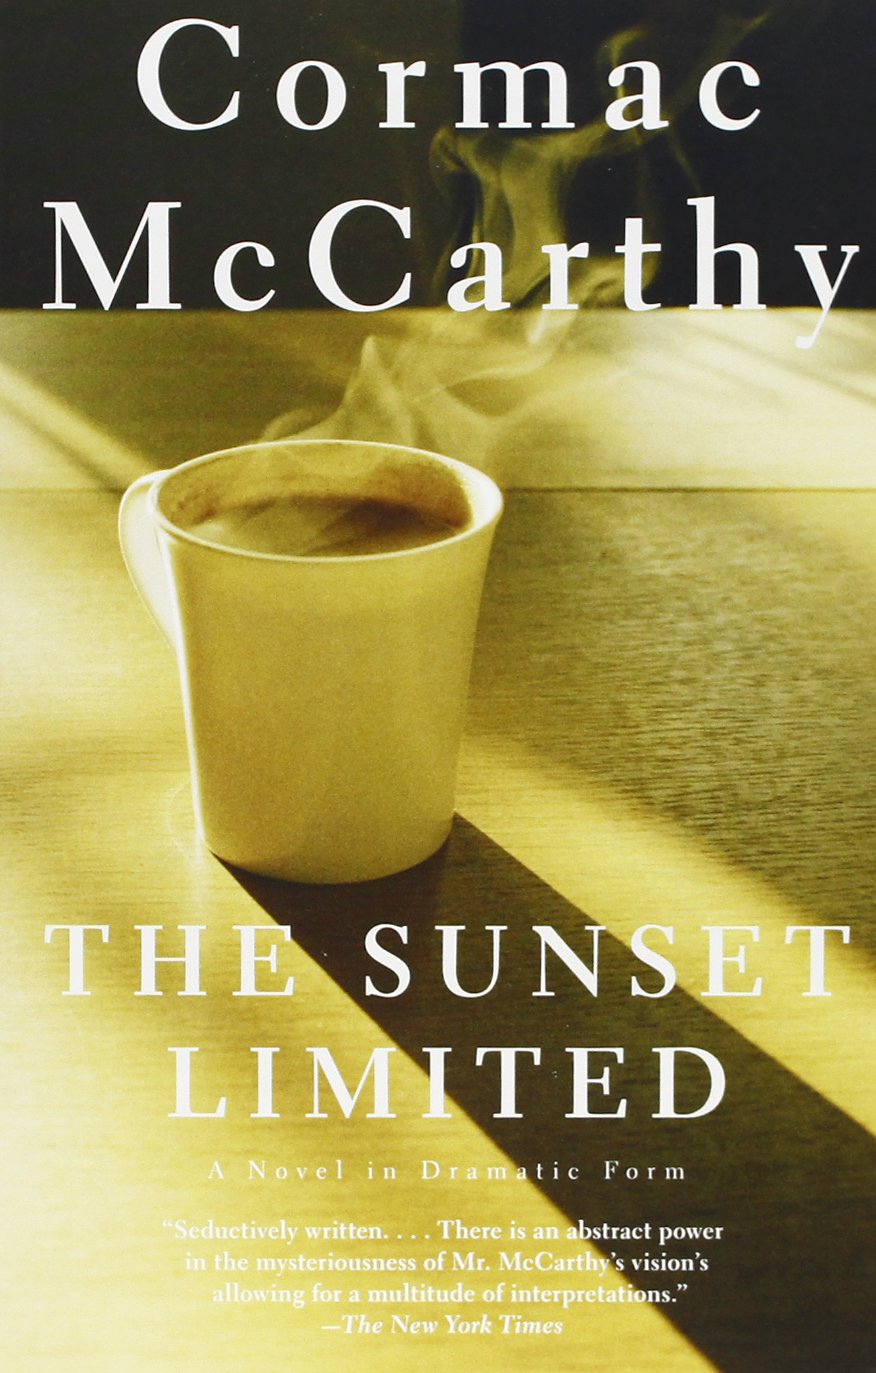 The Sunset Limited: A Novel In Dramatic Form: Cormac Mccarthy:  9780307278364: Amazon: Books